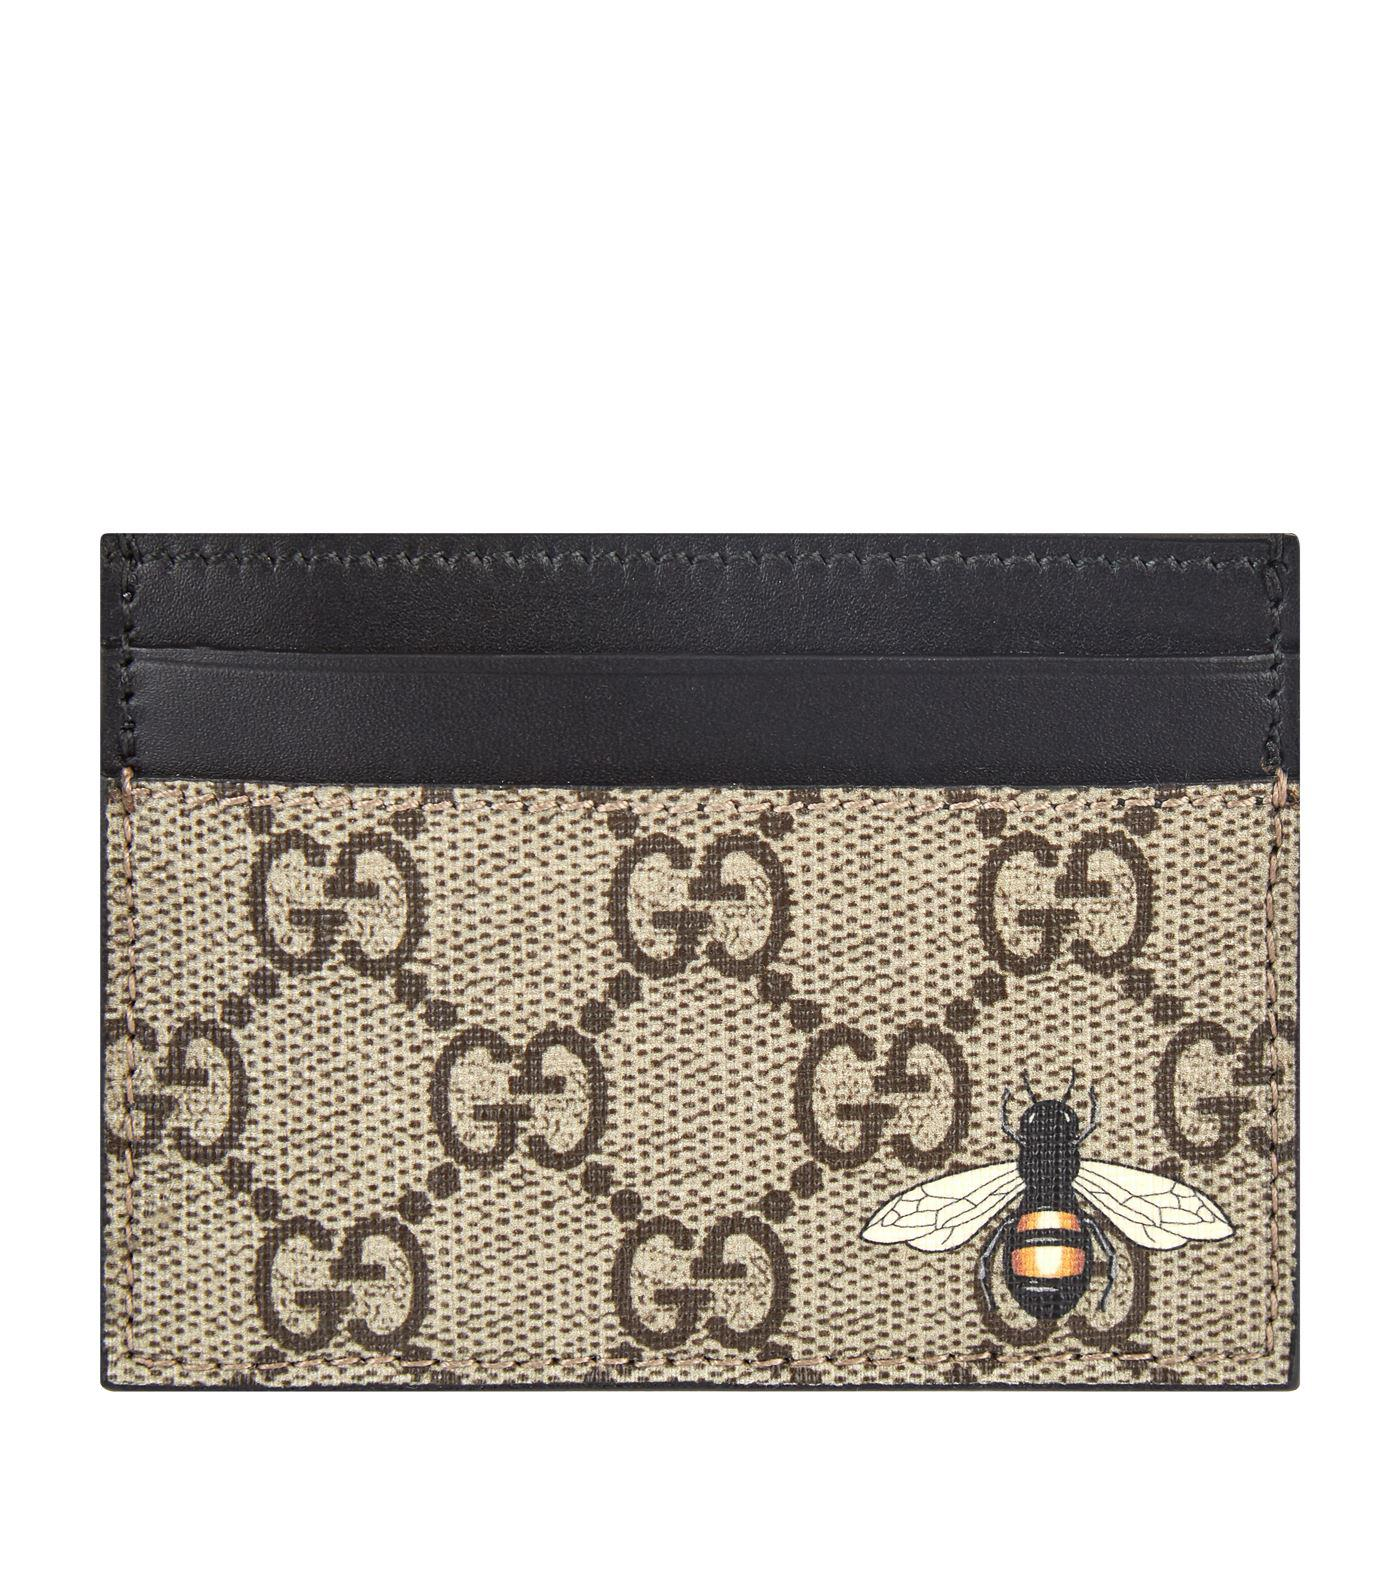 4a598a70157 Lyst - Gucci GG Supreme Card Holder in Natural for Men